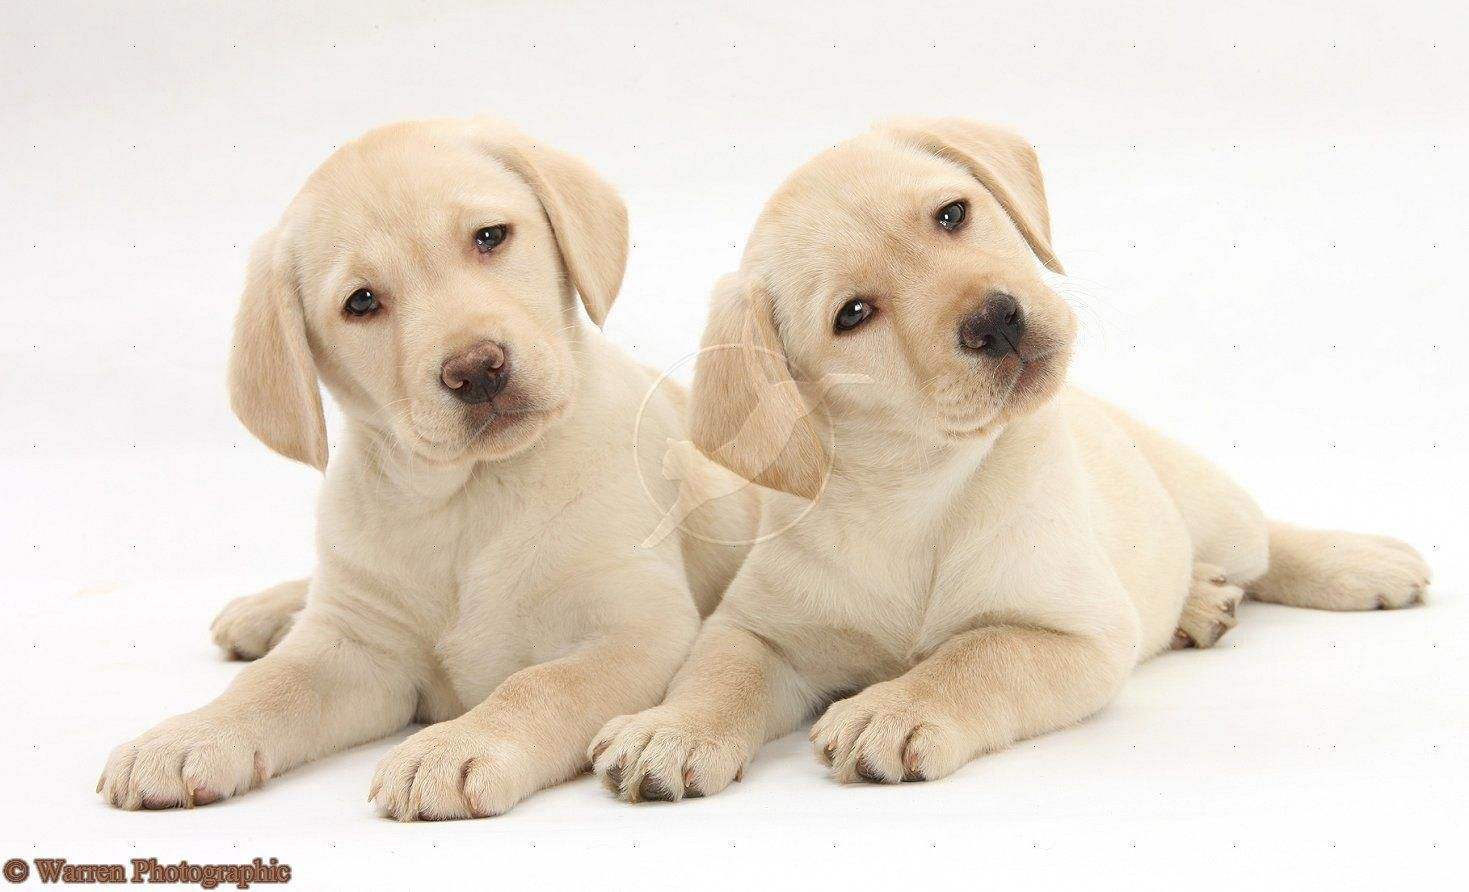 White Lab Dogs Yellow Labrador Retriever Puppies 9 Weeks Old